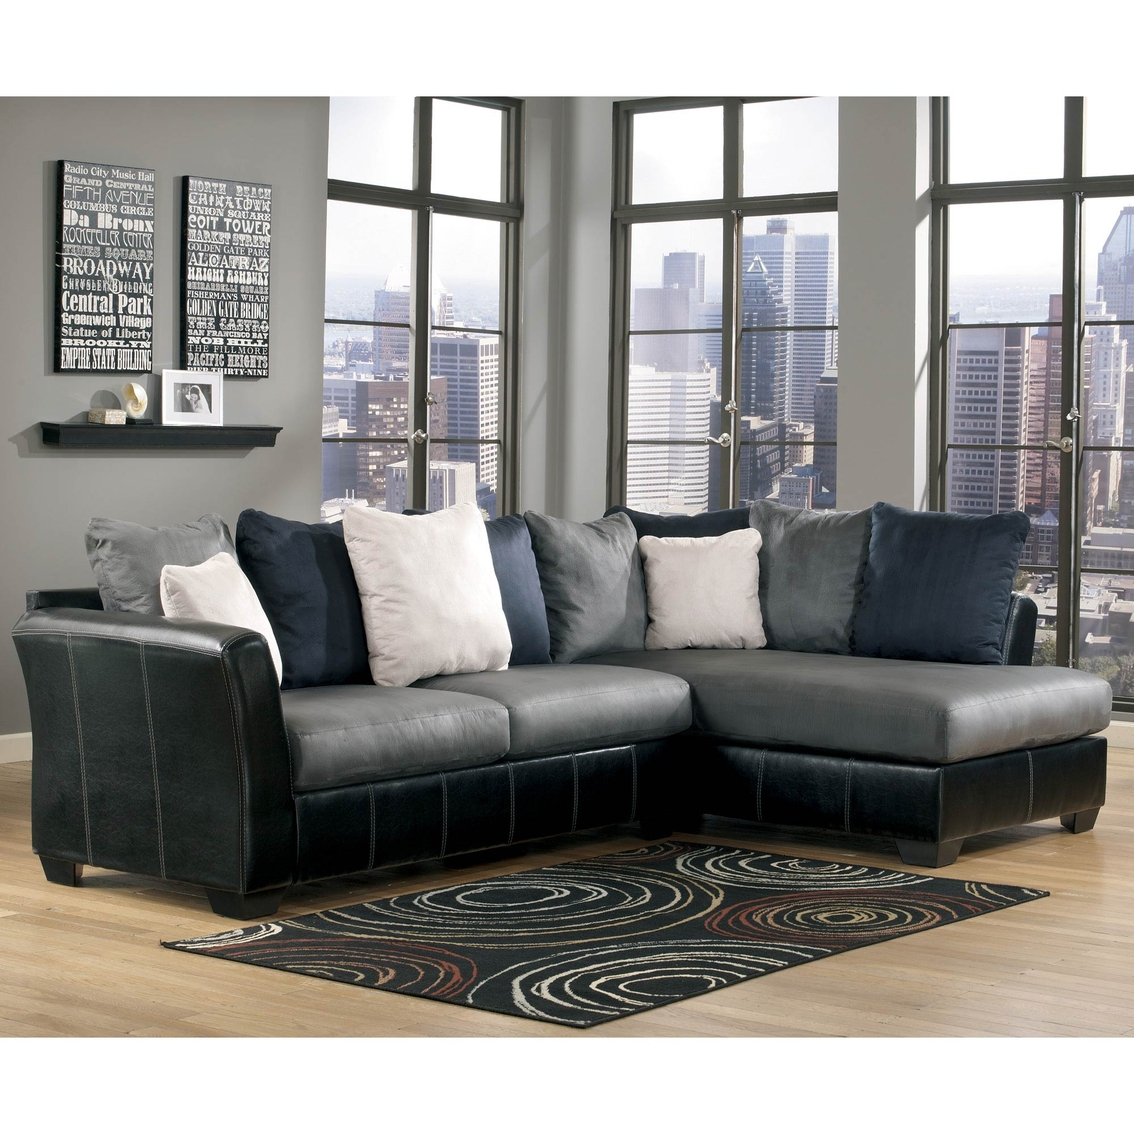 2 pc laf sectional sofa beds on finance ashley masoli raf chaise sofas